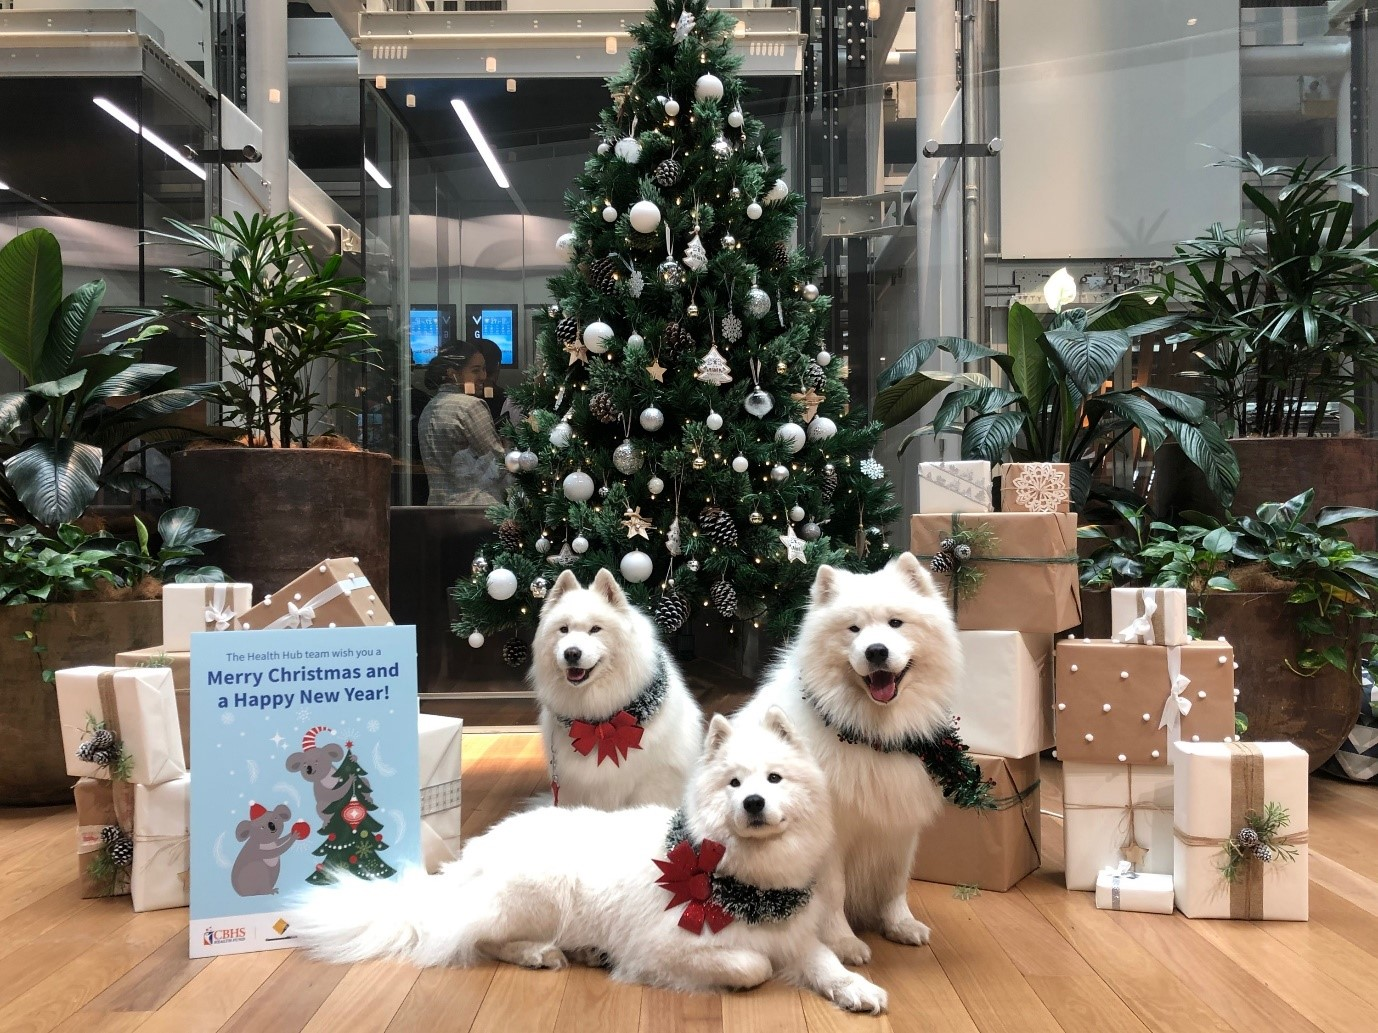 Samoyed dogs visited CommBank staff at last Christmas